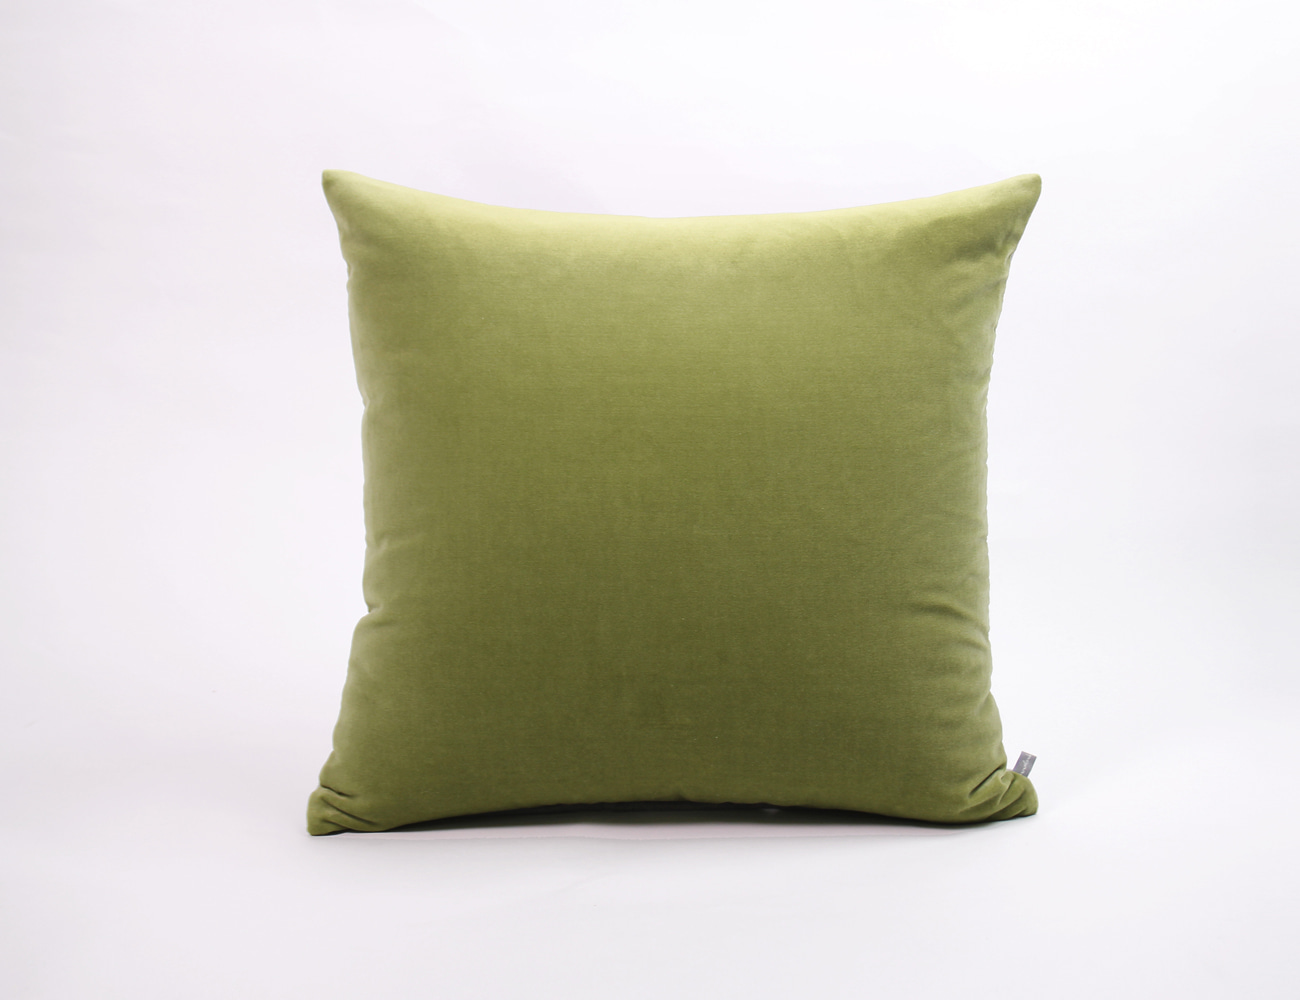 VELVET STITCH CUSHION_50x50 OLIVE